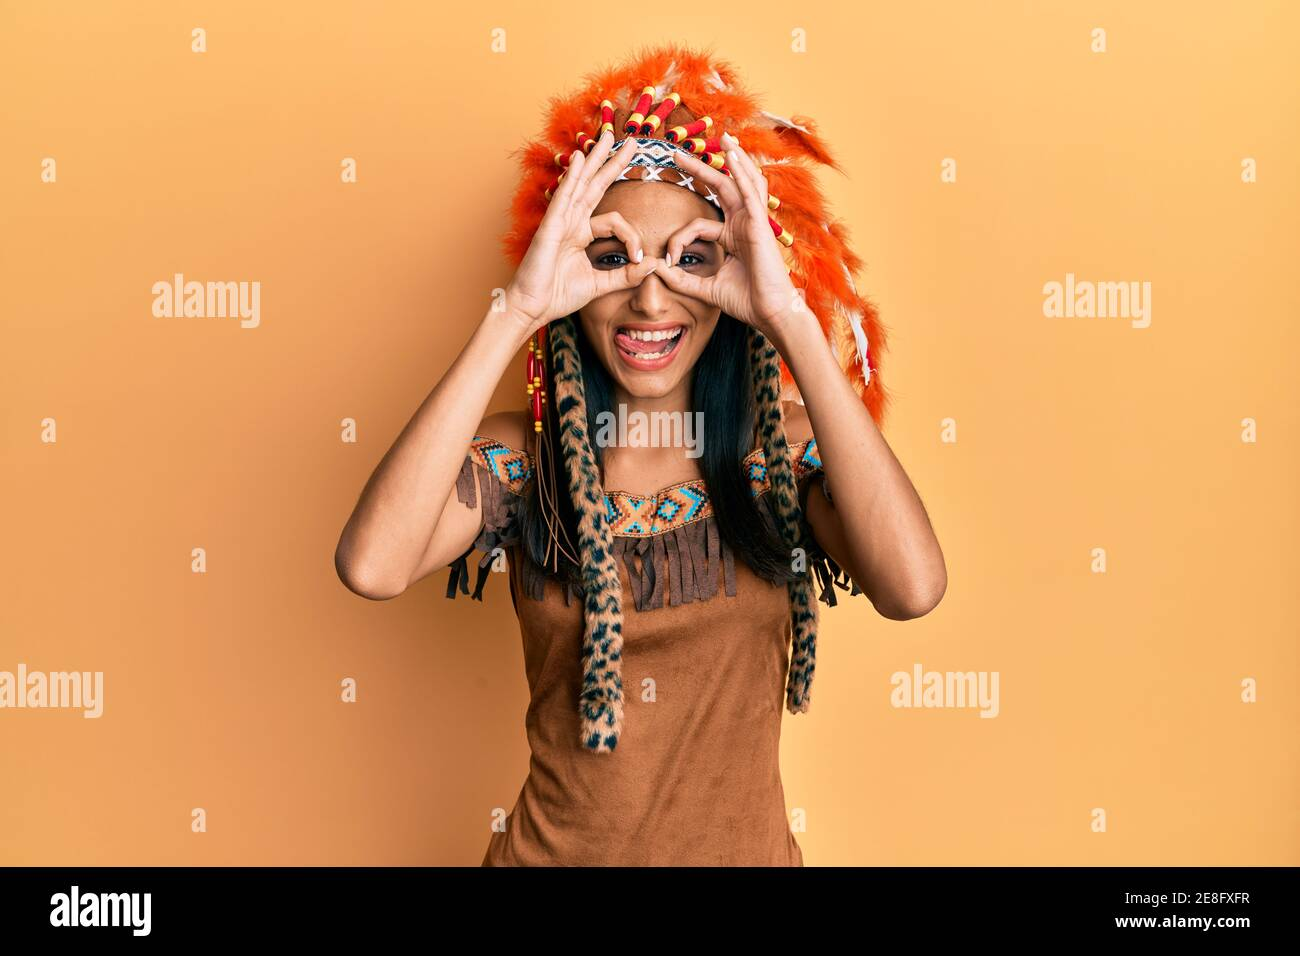 Young brunette woman wearing indian costume doing ok gesture like binoculars sticking tongue out, eyes looking through fingers. crazy expression. Stock Photo